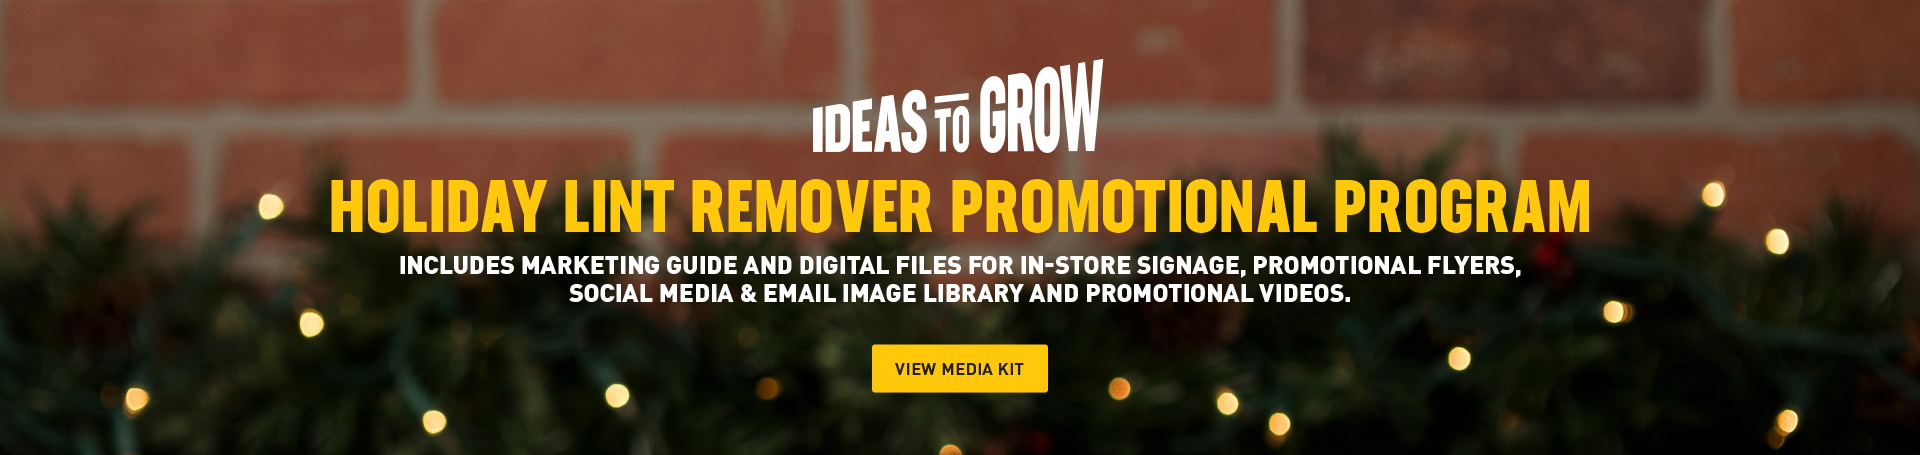 Ideas to Grow Holiday Lint Remover Promotional Program